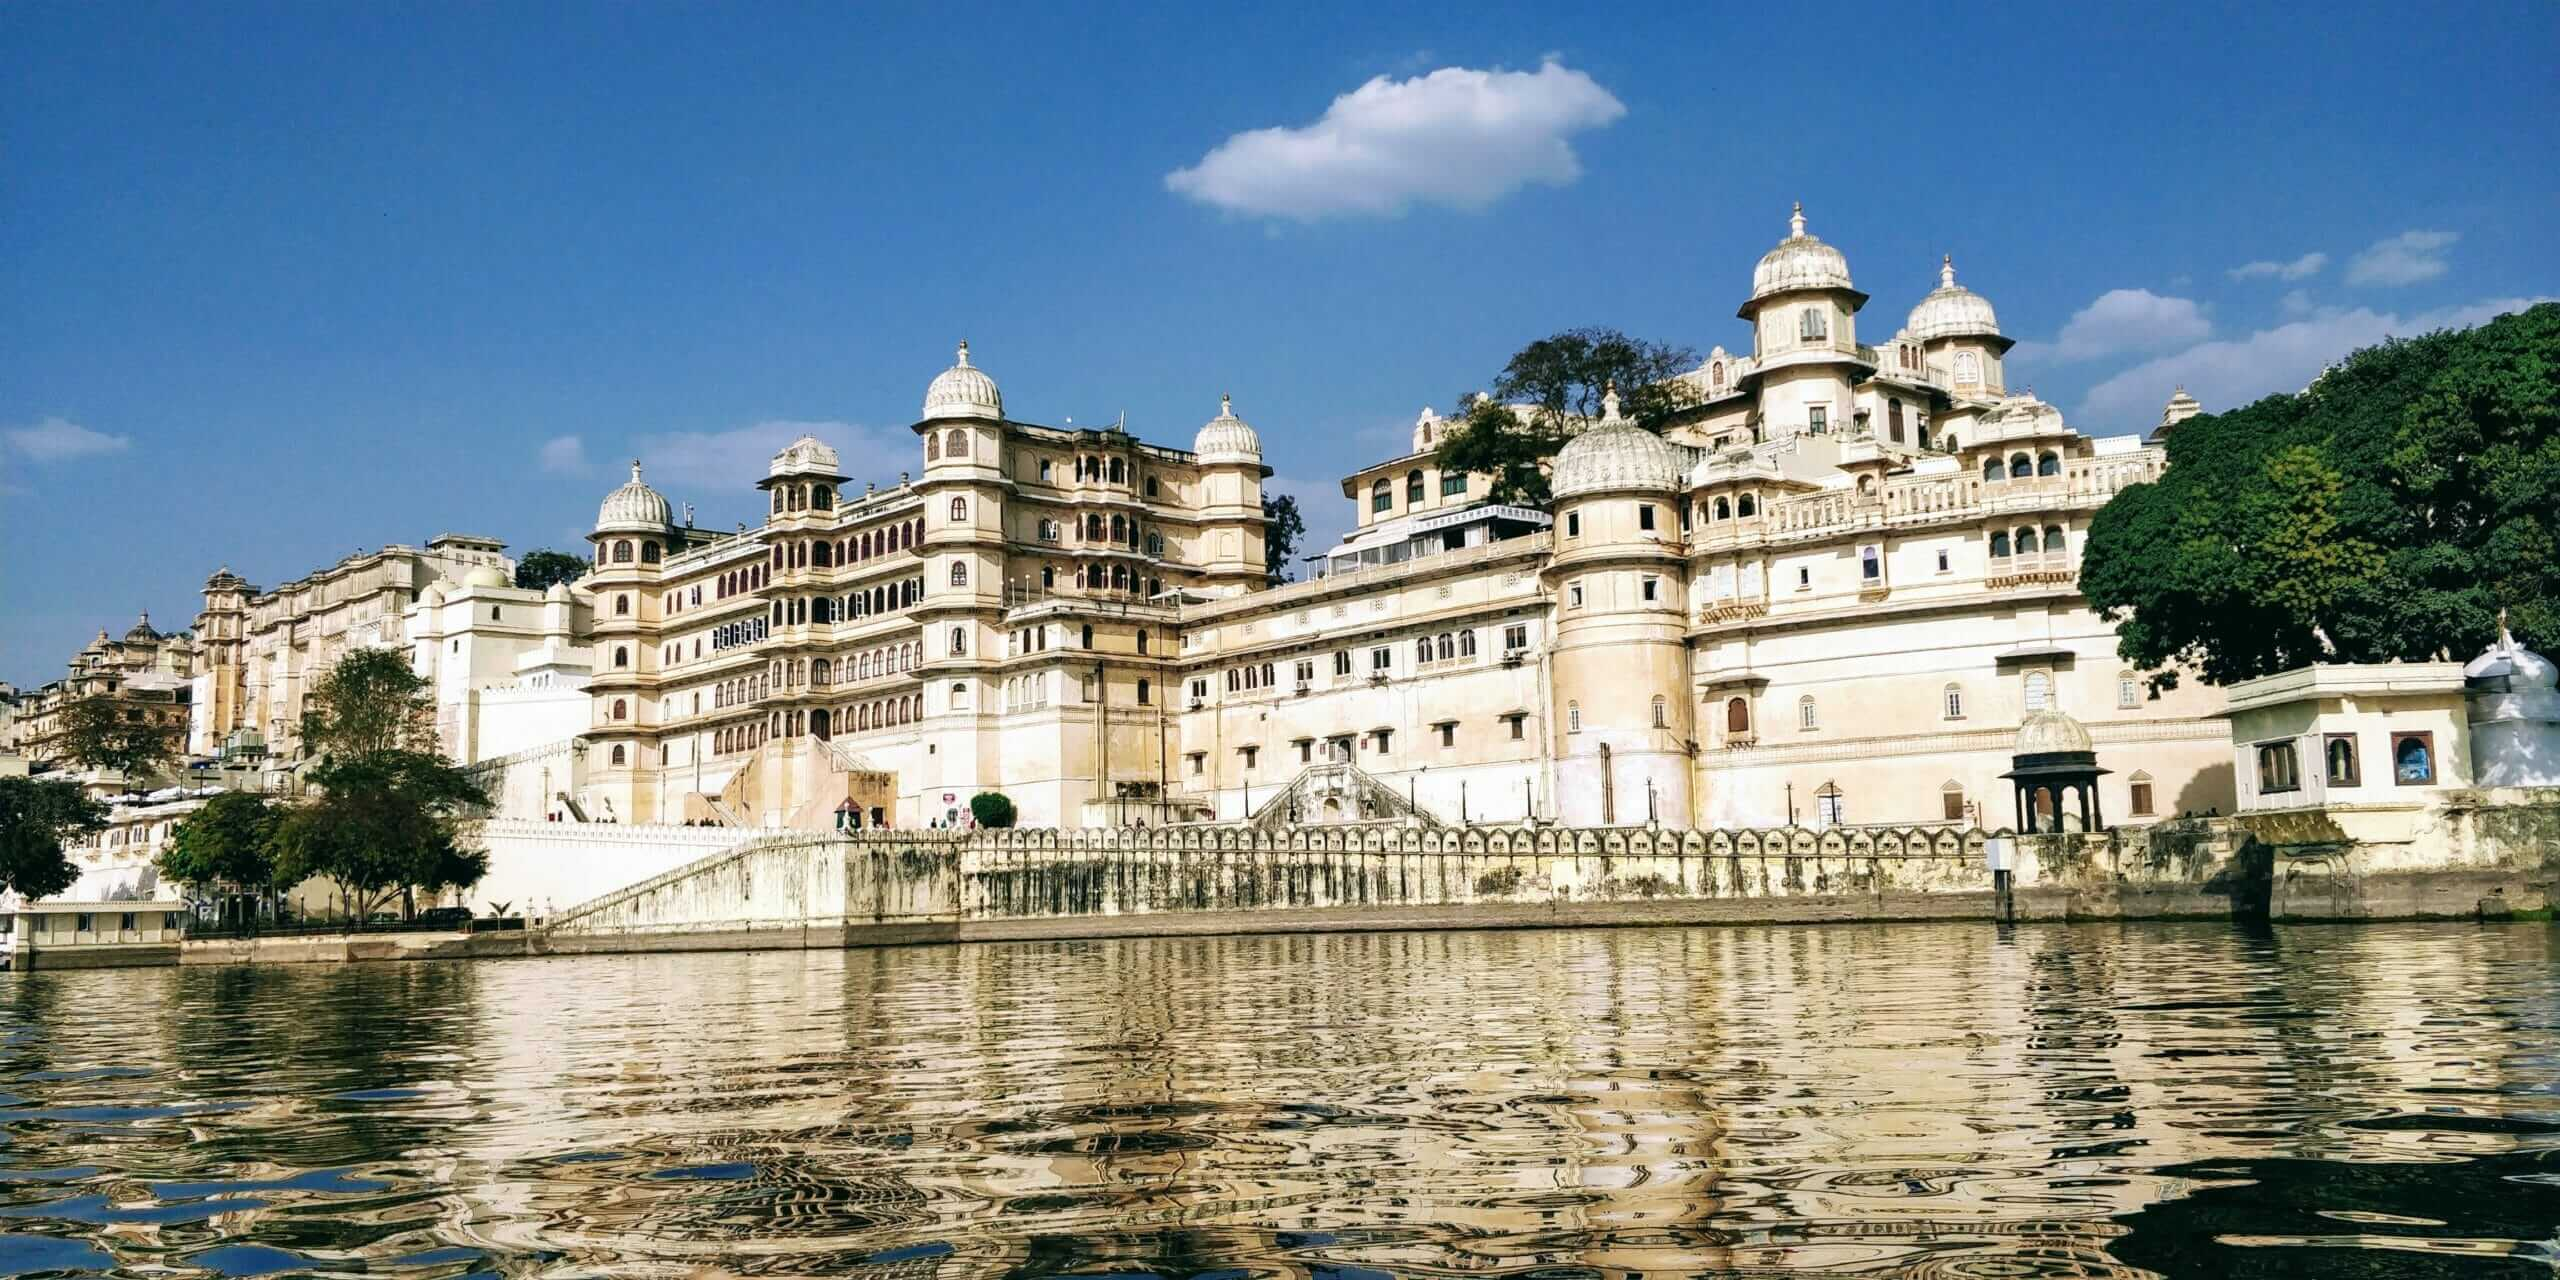 While backpacking Udaipur, be sure to visit the City Palace and take a boat out on Lake Pichola for a great view